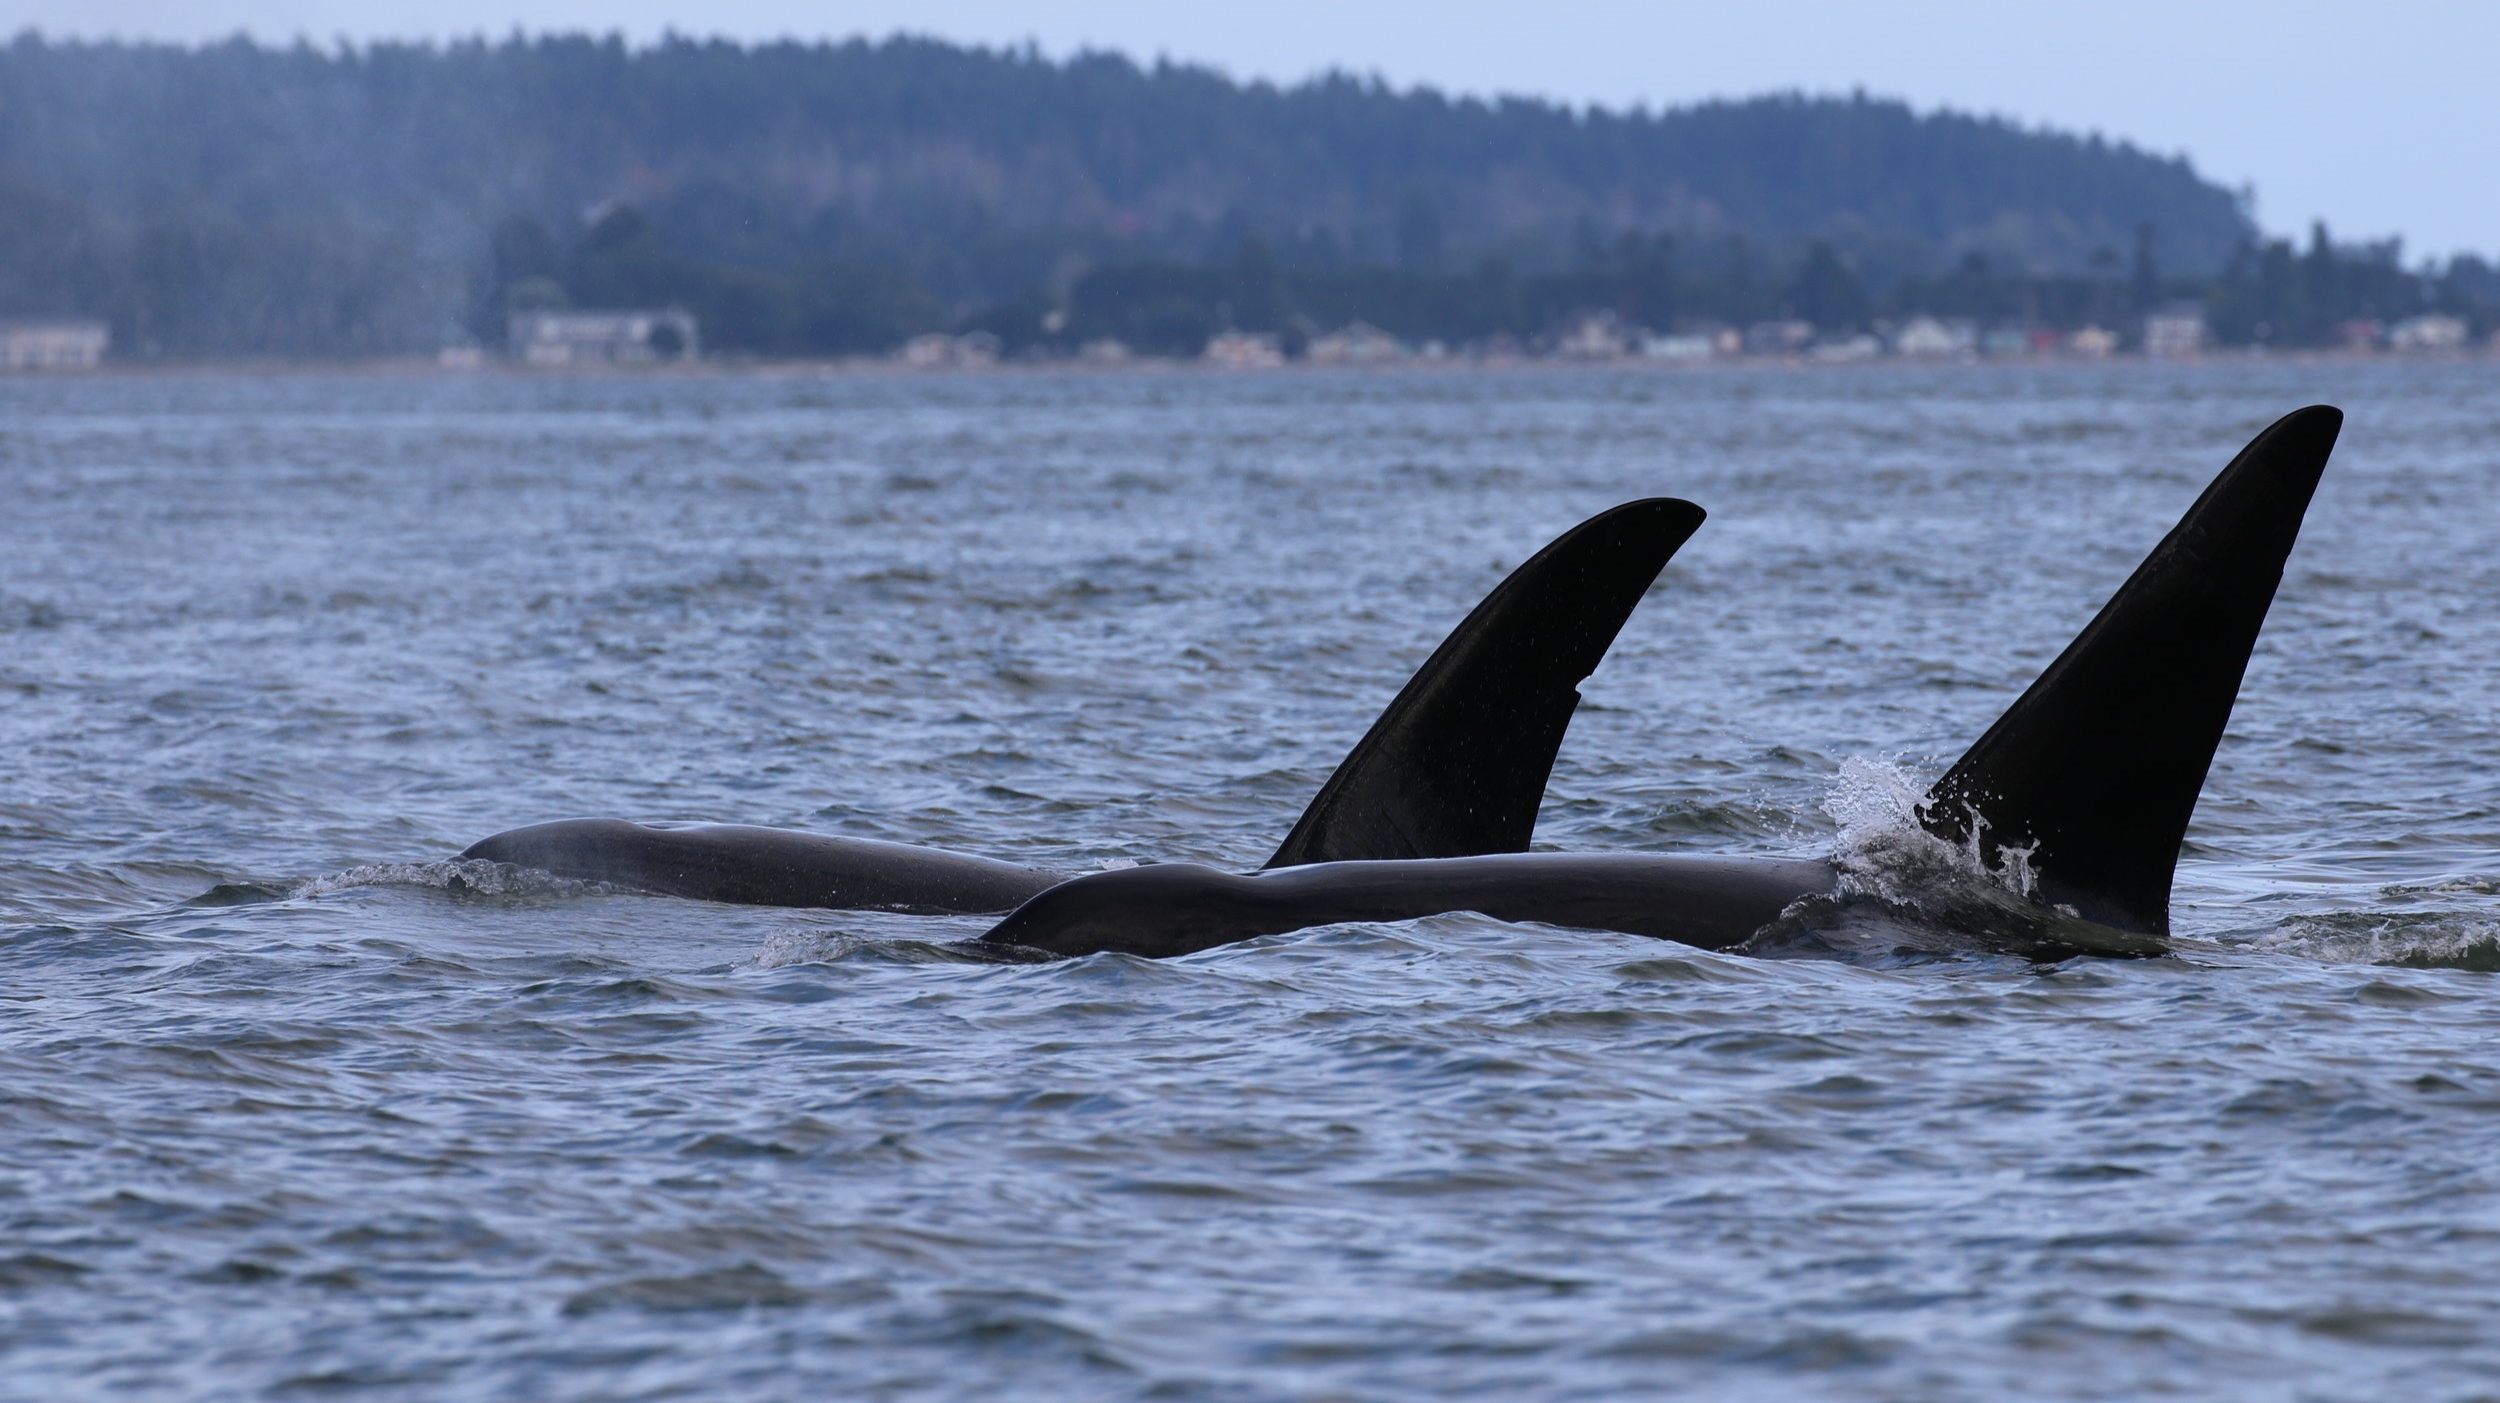 """T19B- """"Galiano"""" (back) and T19C - """"Spouter (front). Photo by Natalie Reichenbacher (3:30)."""